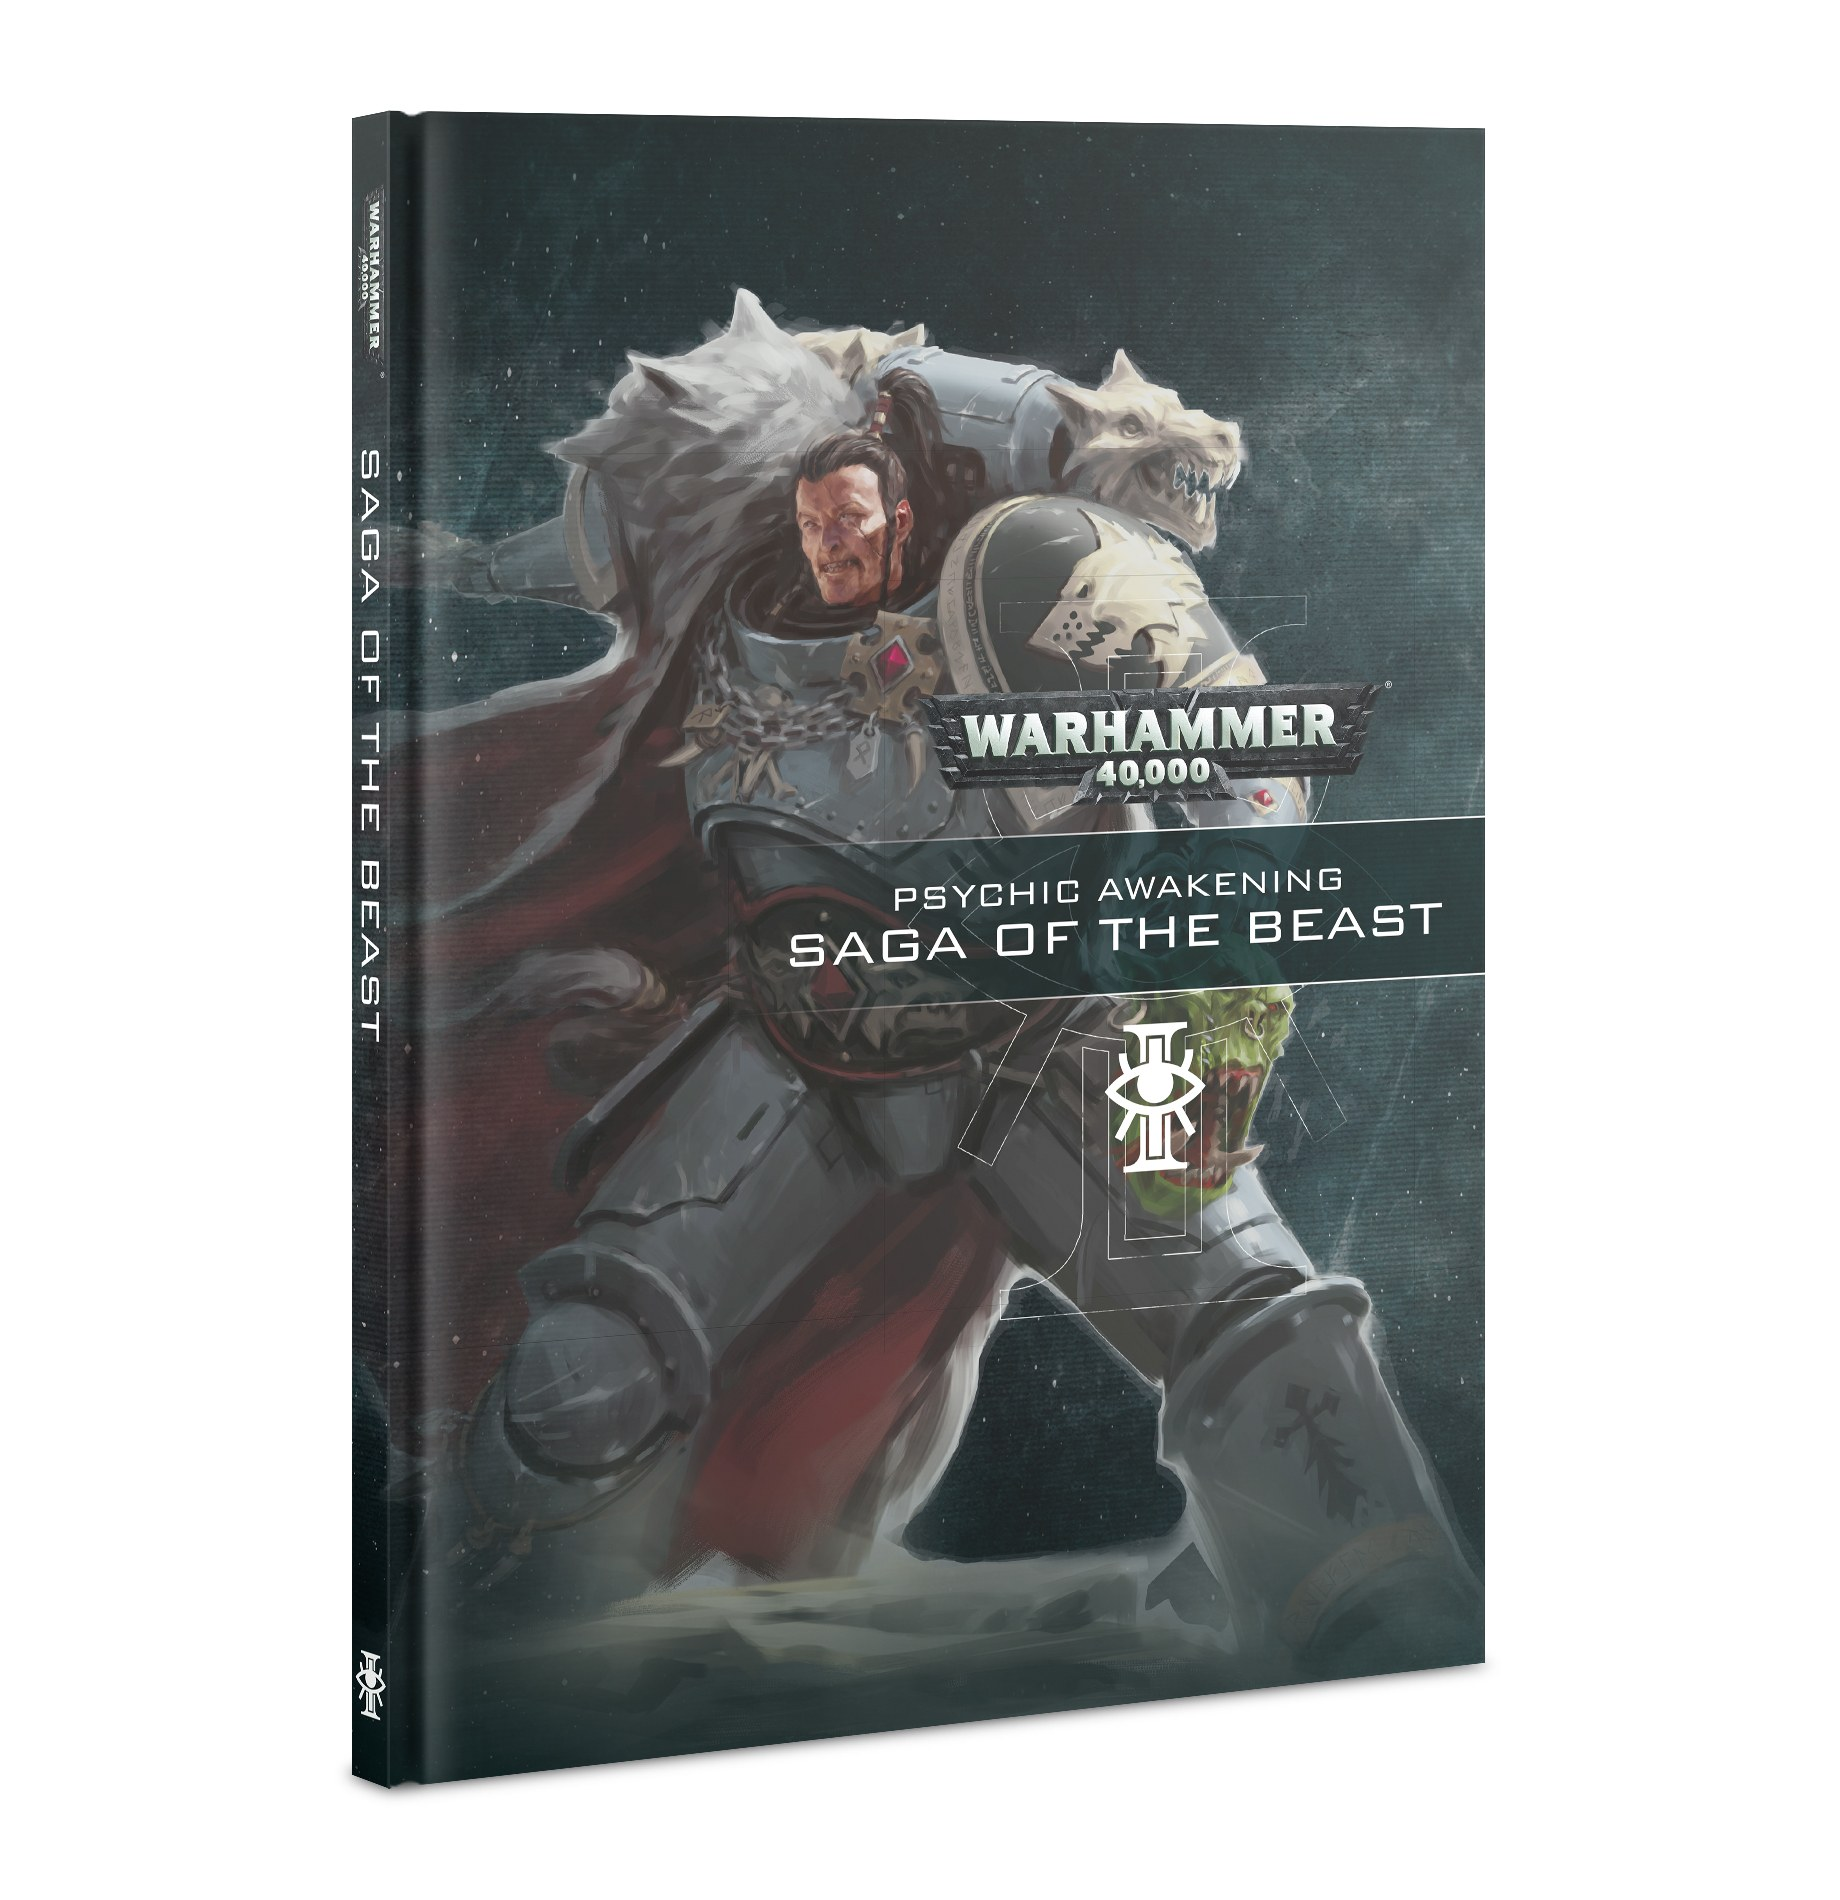 Warhammer 40k : Psychic Awakening - Saga of the Beast